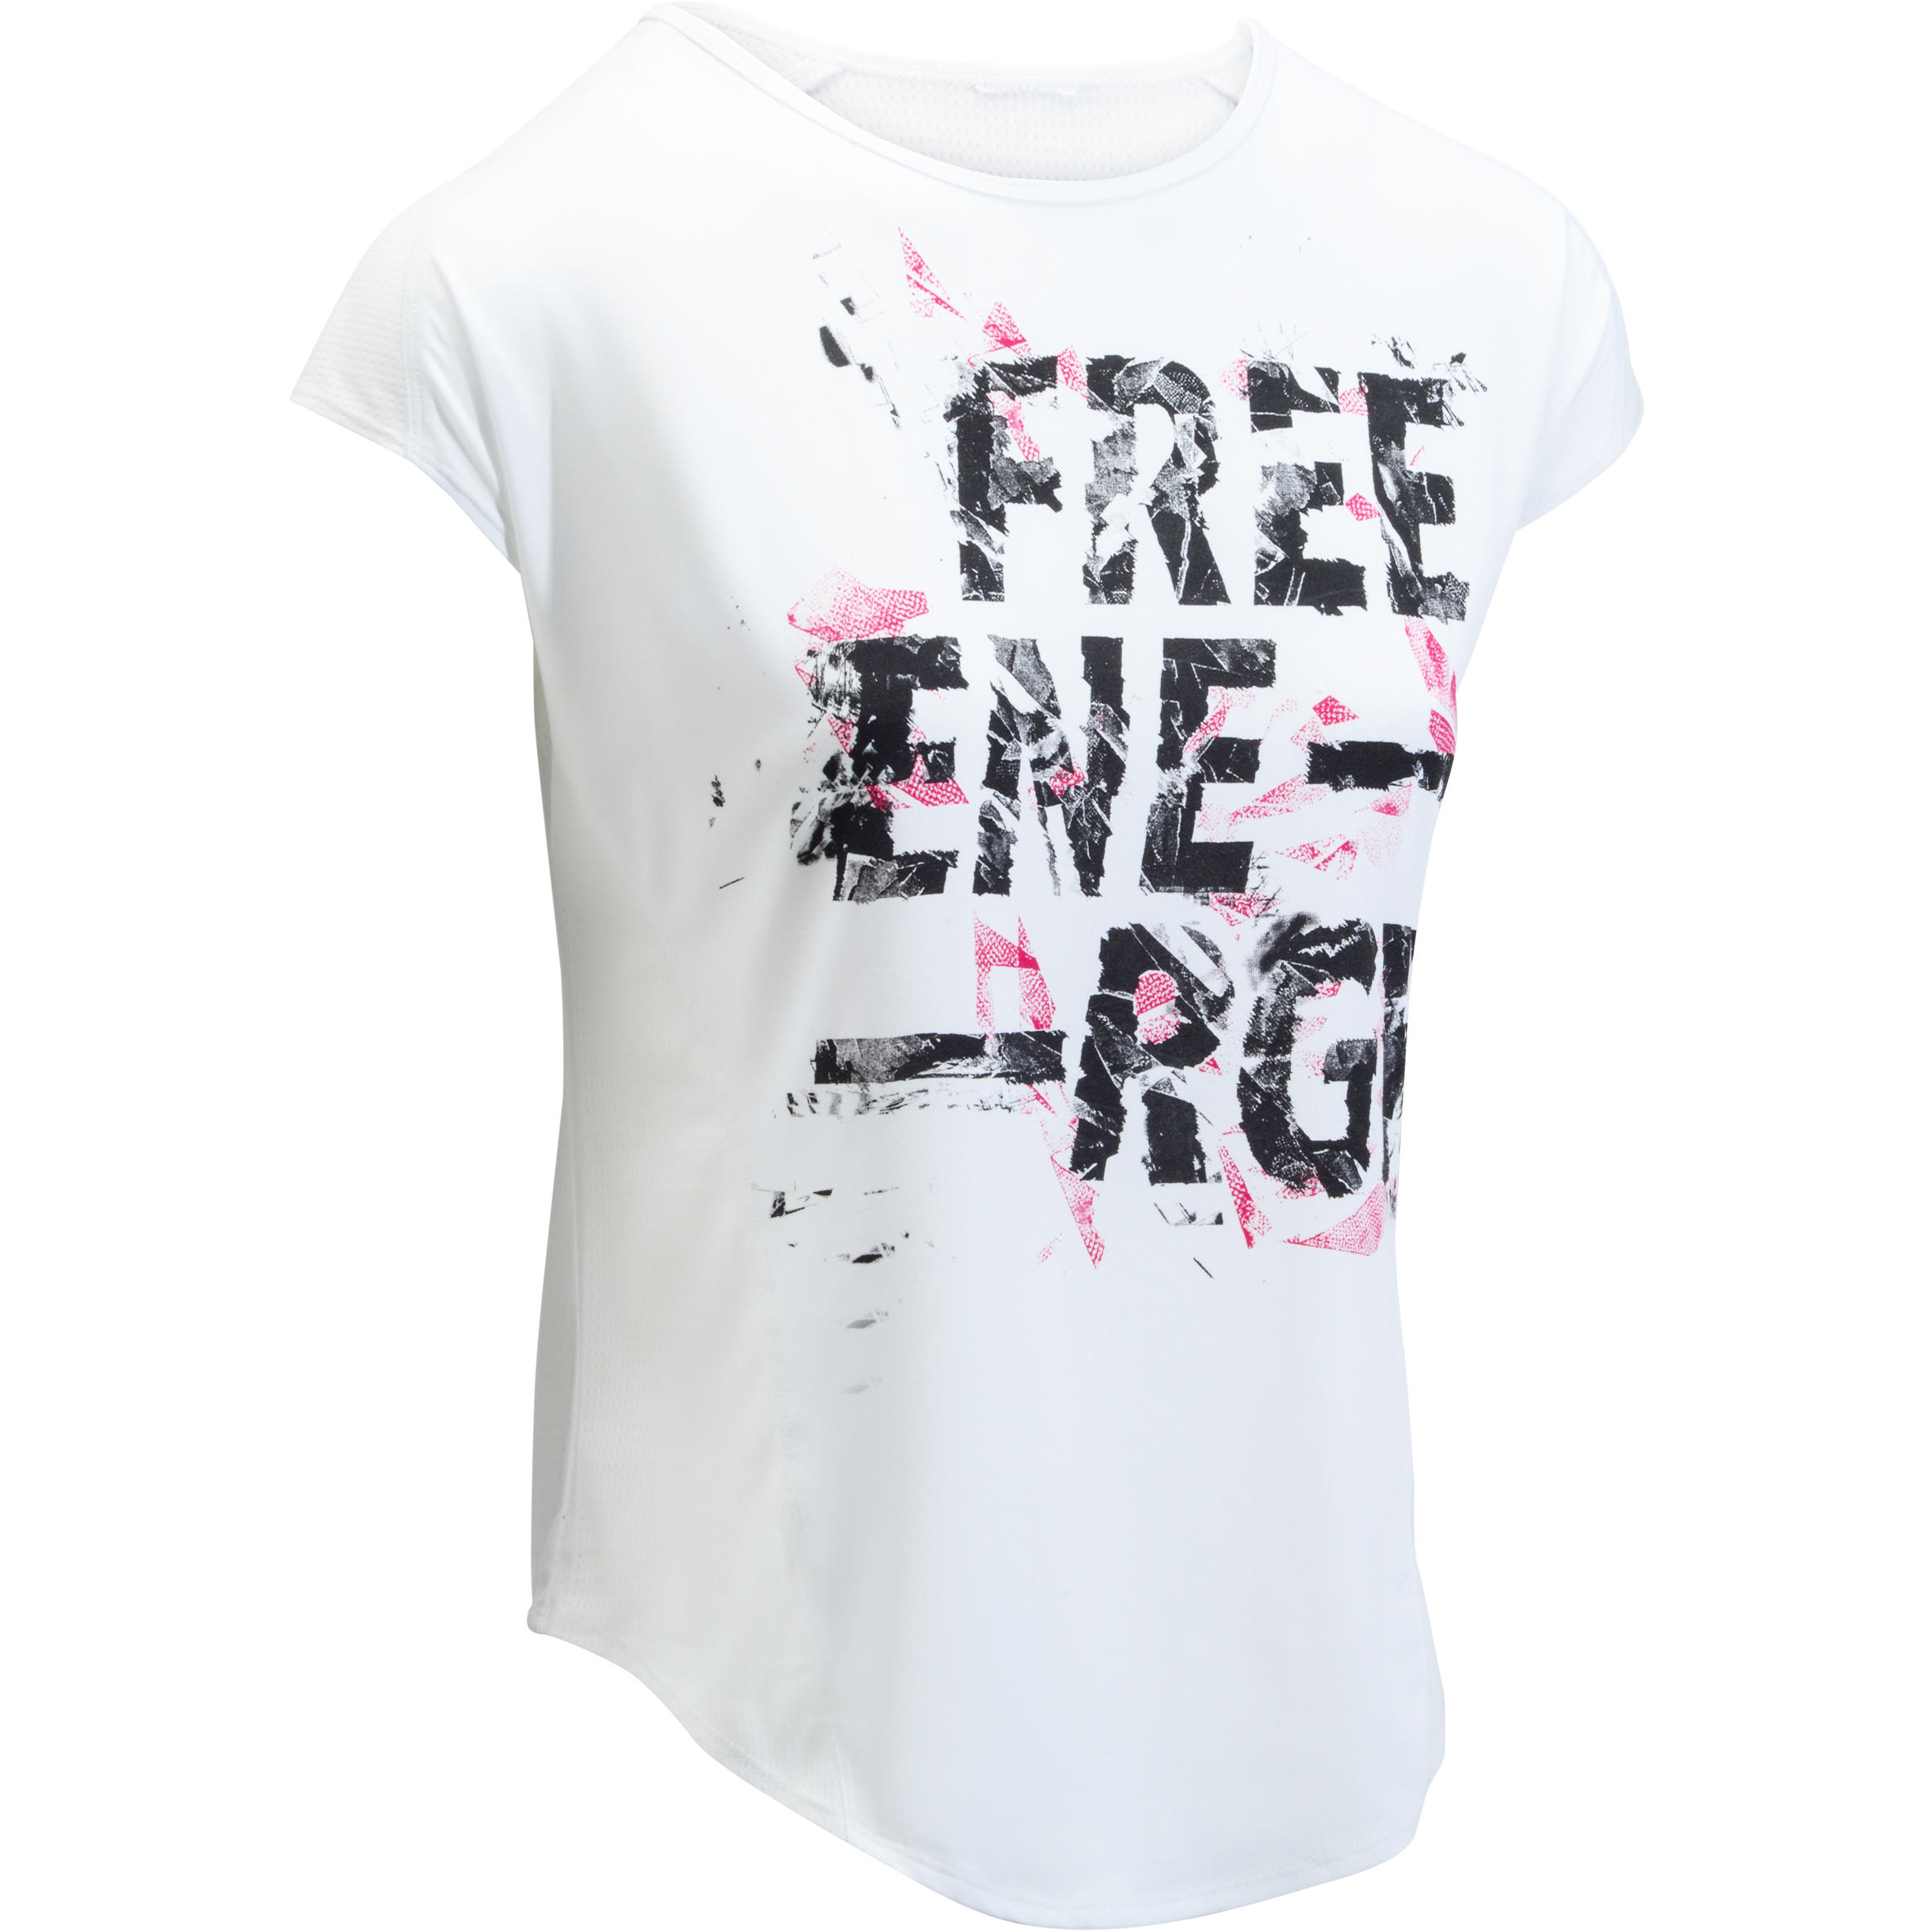 120 Women's Loose-Fit Cardio Fitness T-Shirt - White Print